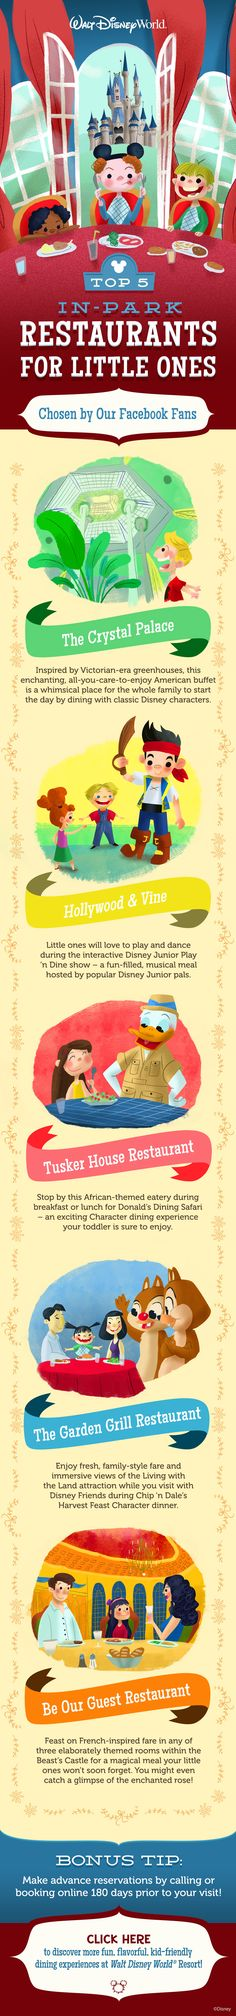 Top 5 In-Park Restaurants for Preschoolers at Walt Disney World chosen by our Facebook fans!